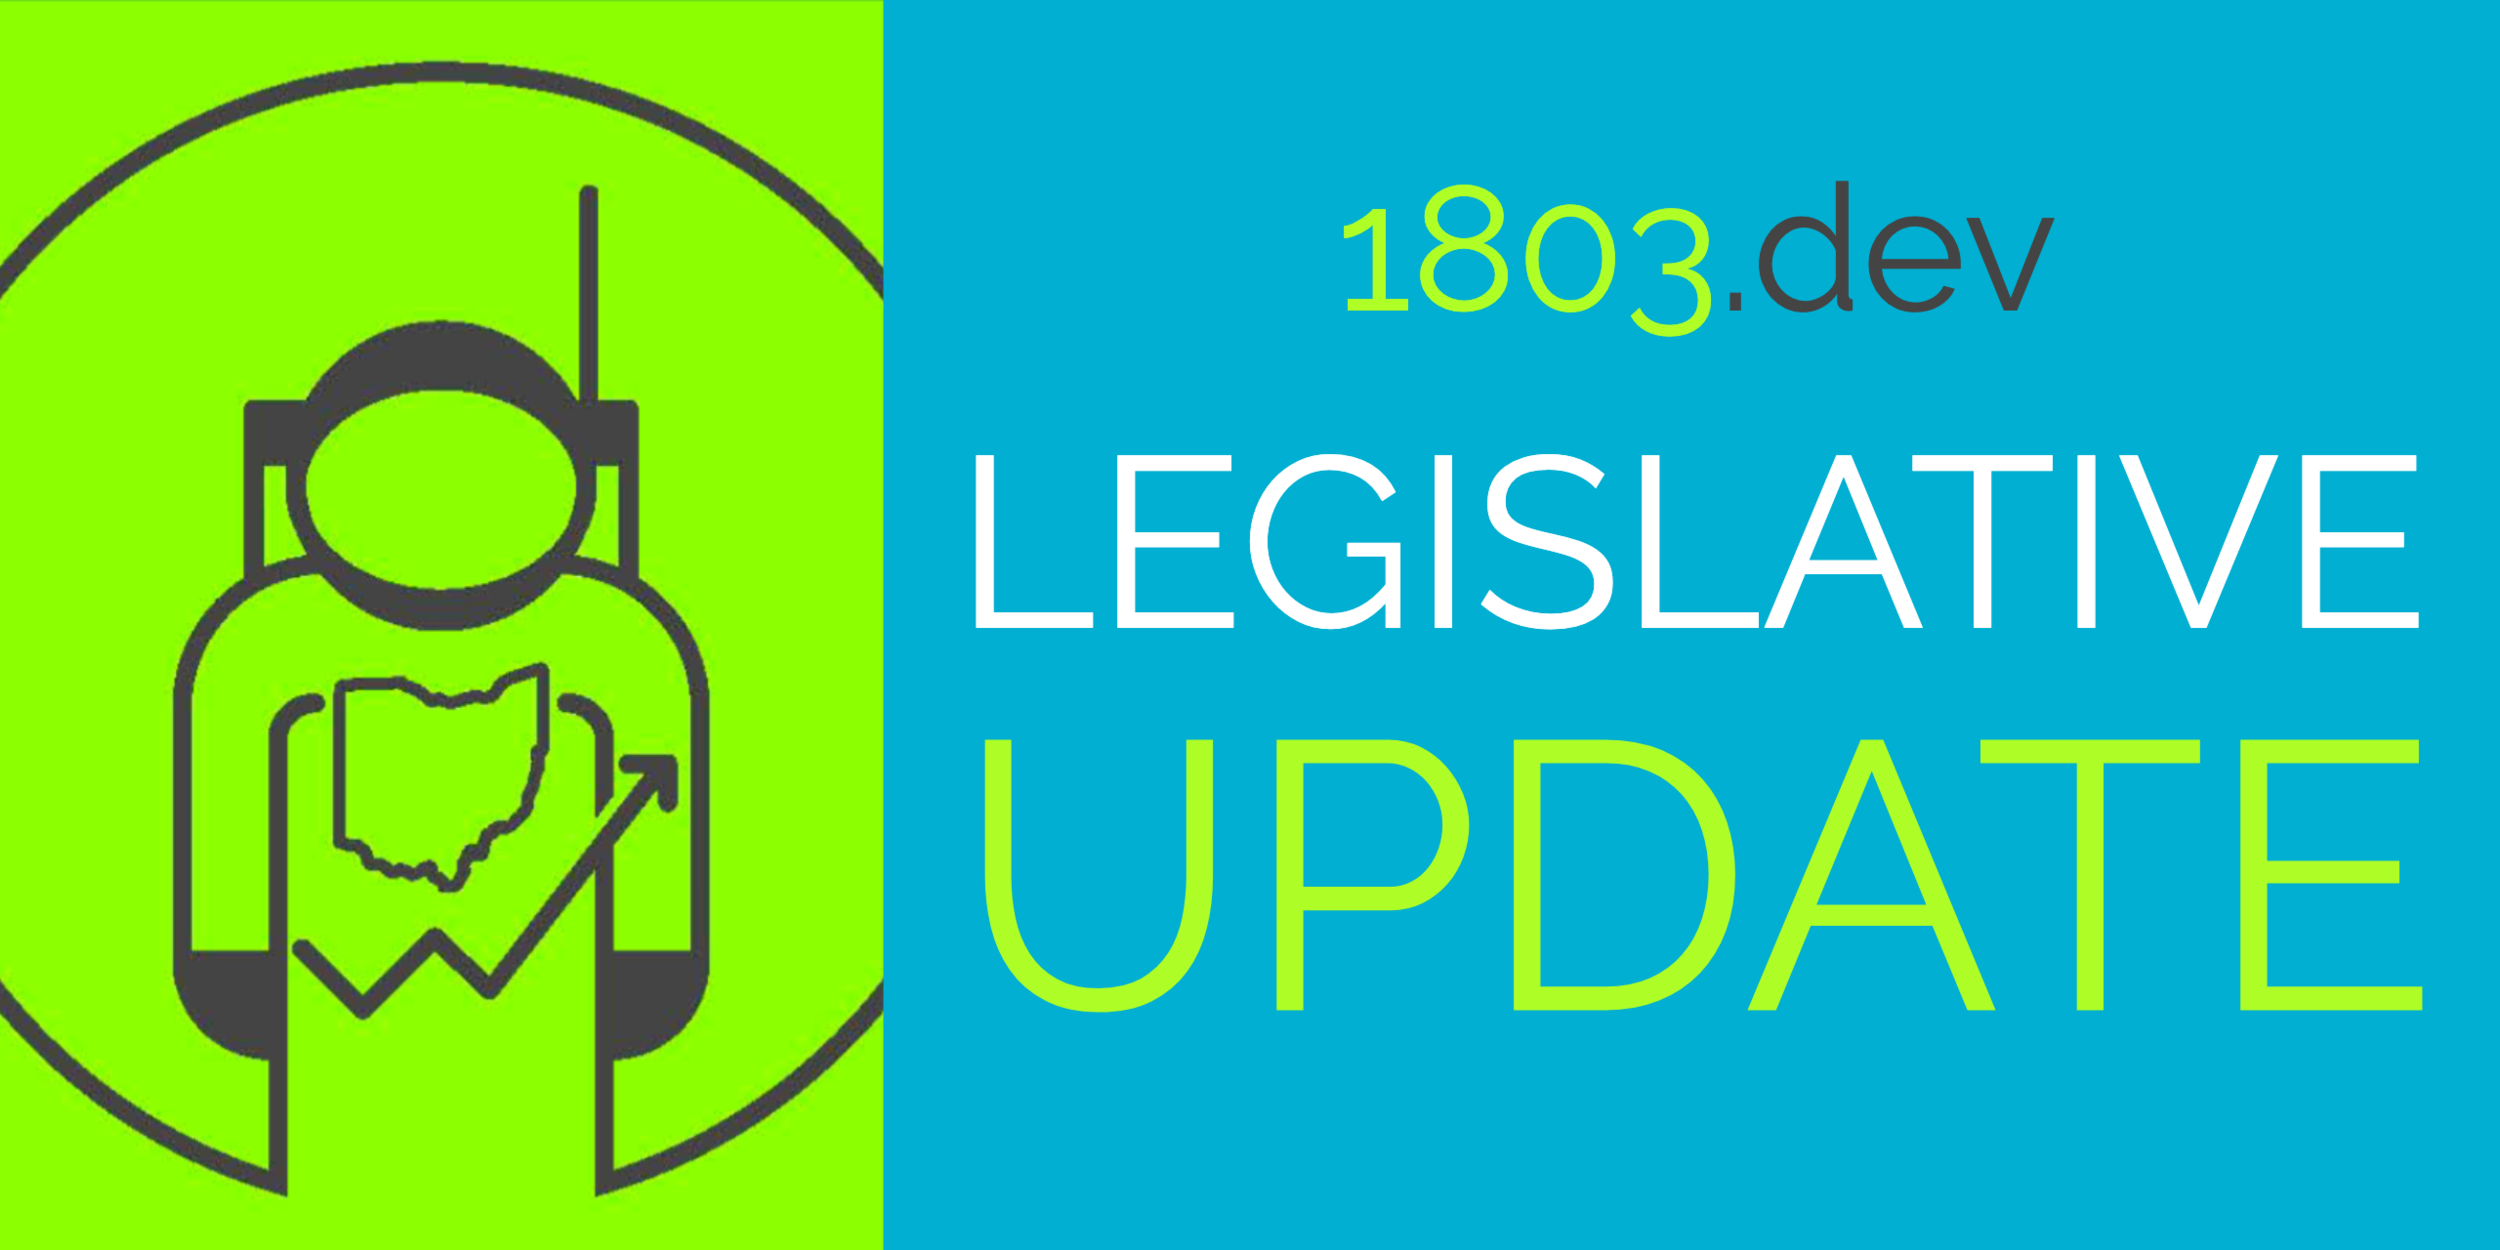 Sign up for Updates! - Ensure that your business keeps up-to-date on the Federal and Statehouse laws, rules and policies that affect your business, startup and organization.